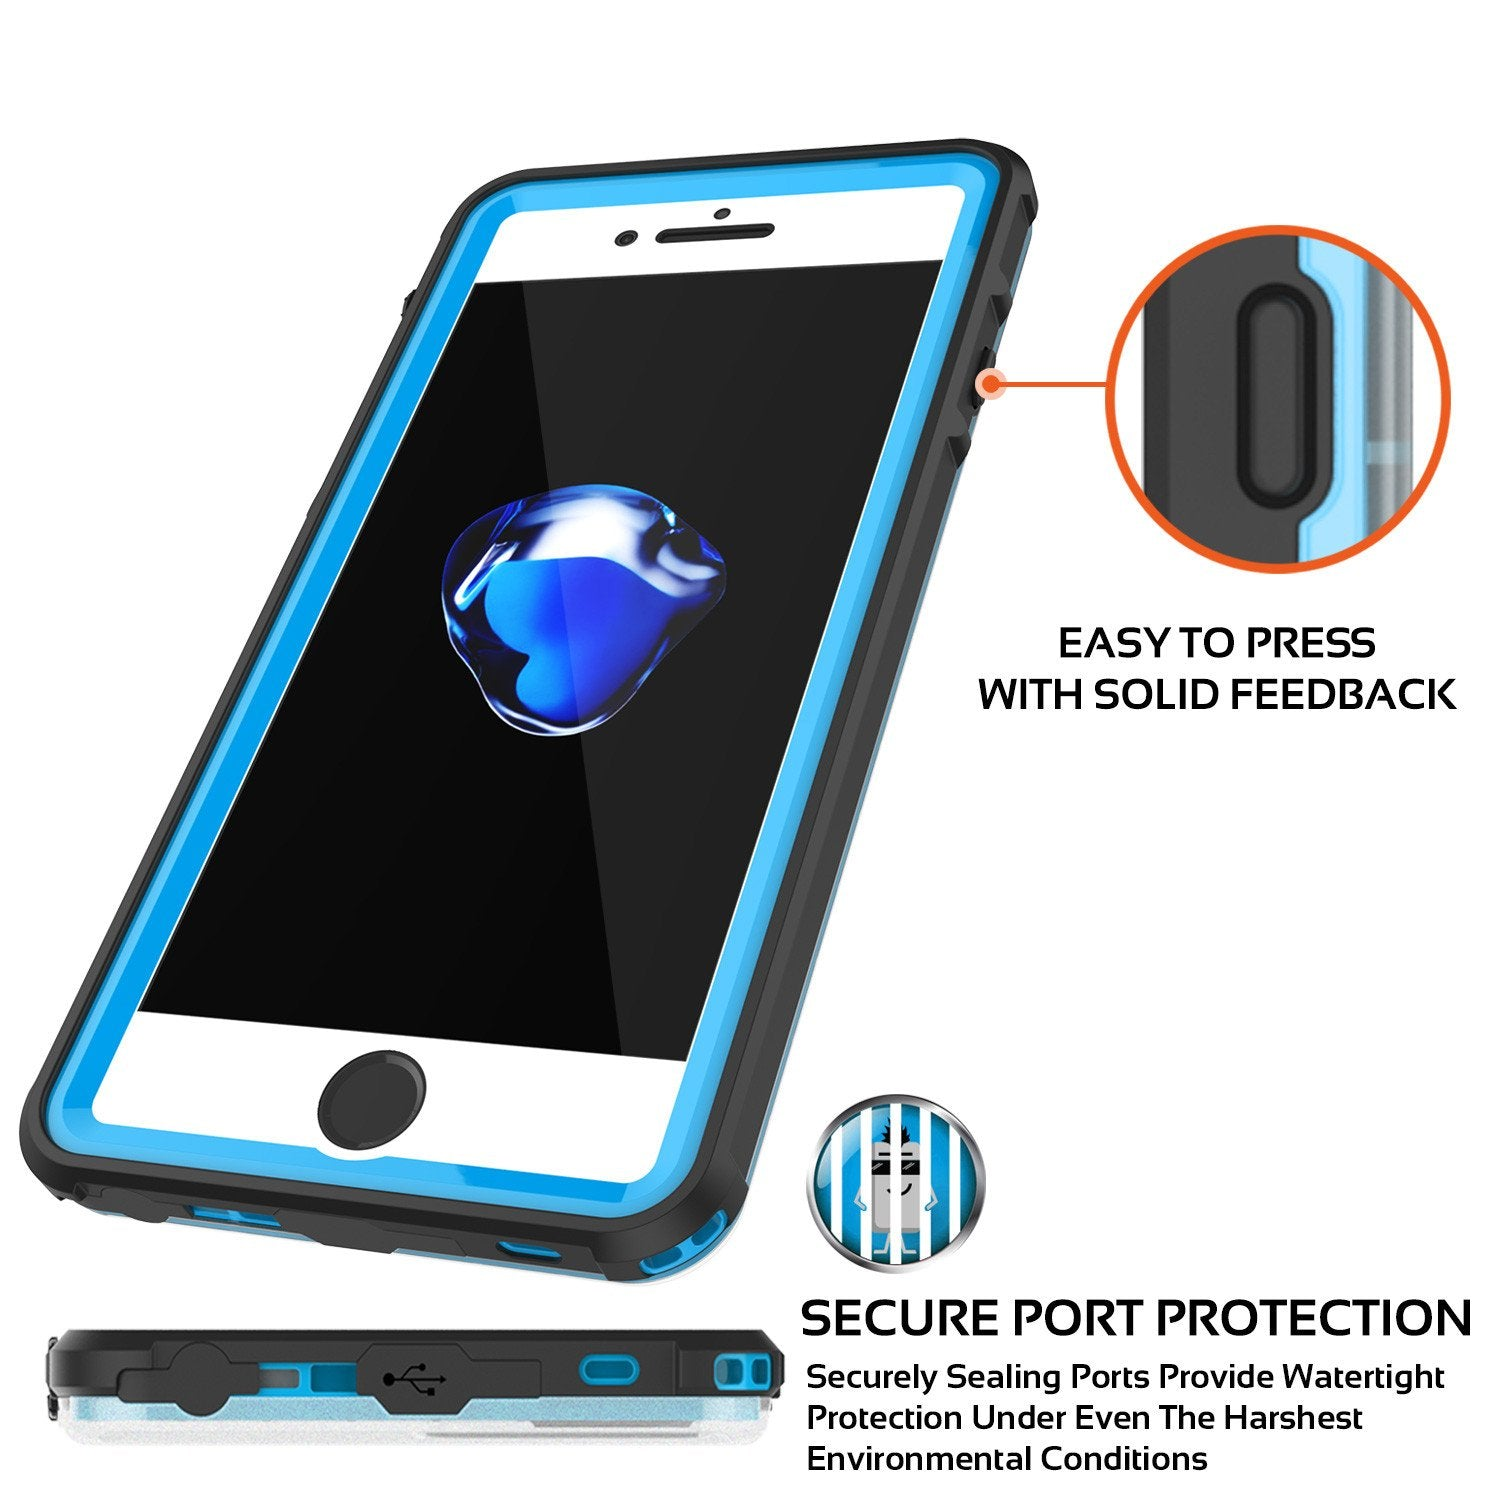 Apple iPhone 8 Waterproof Case, PUNKcase CRYSTAL Light Blue  W/ Attached Screen Protector  | Warranty